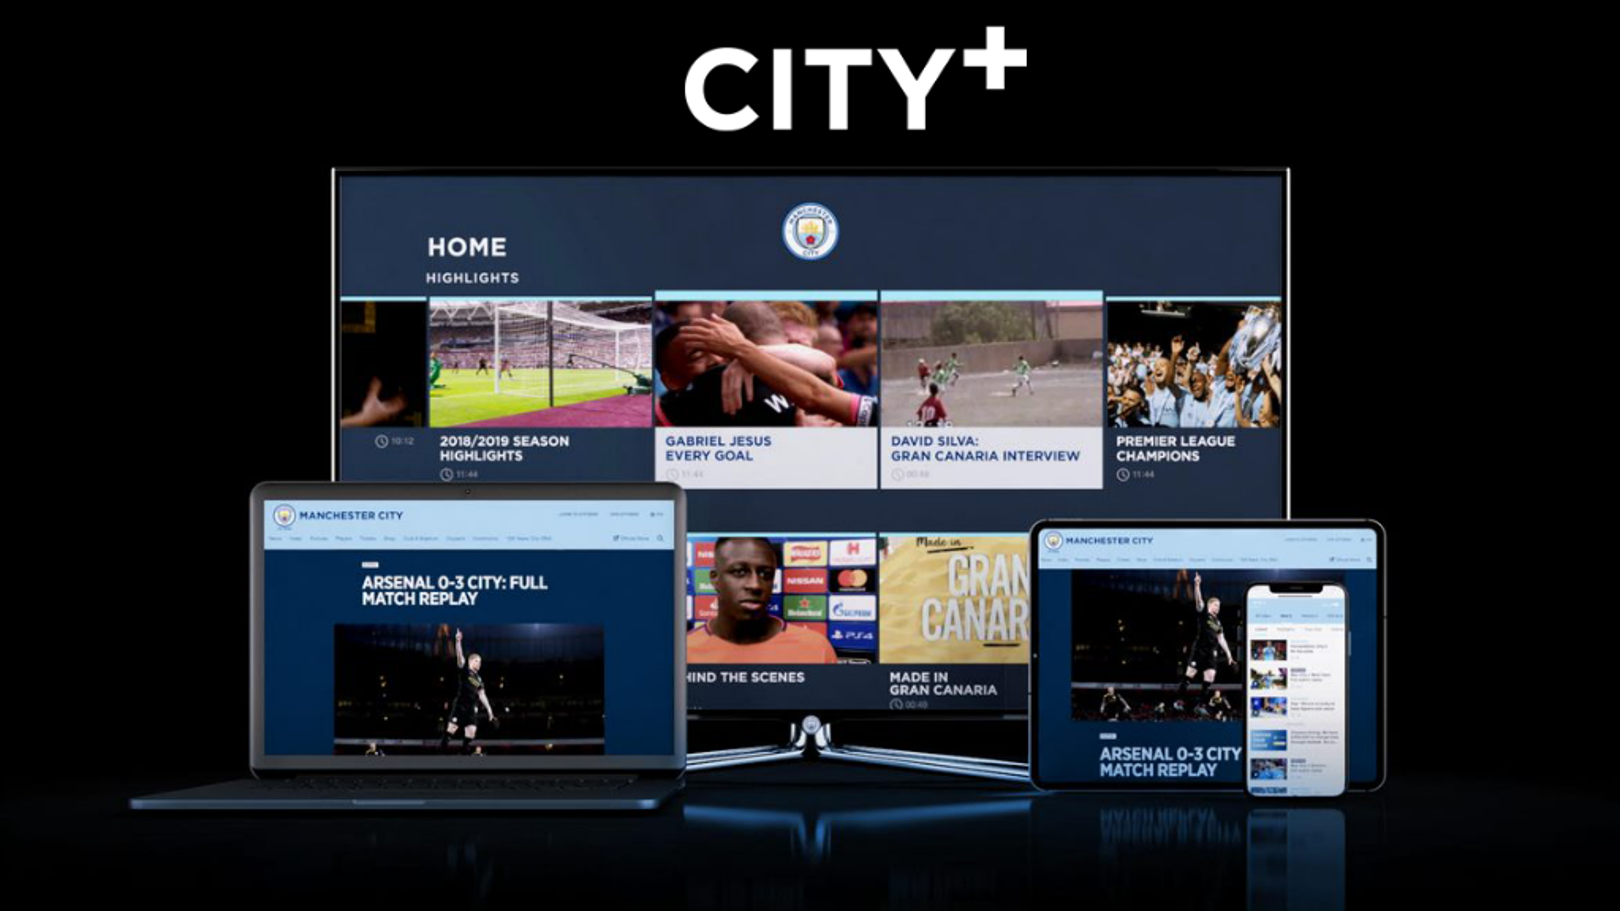 CITY+ FREE TO CITYZENS UNTIL FOOTBALL IS BACK*